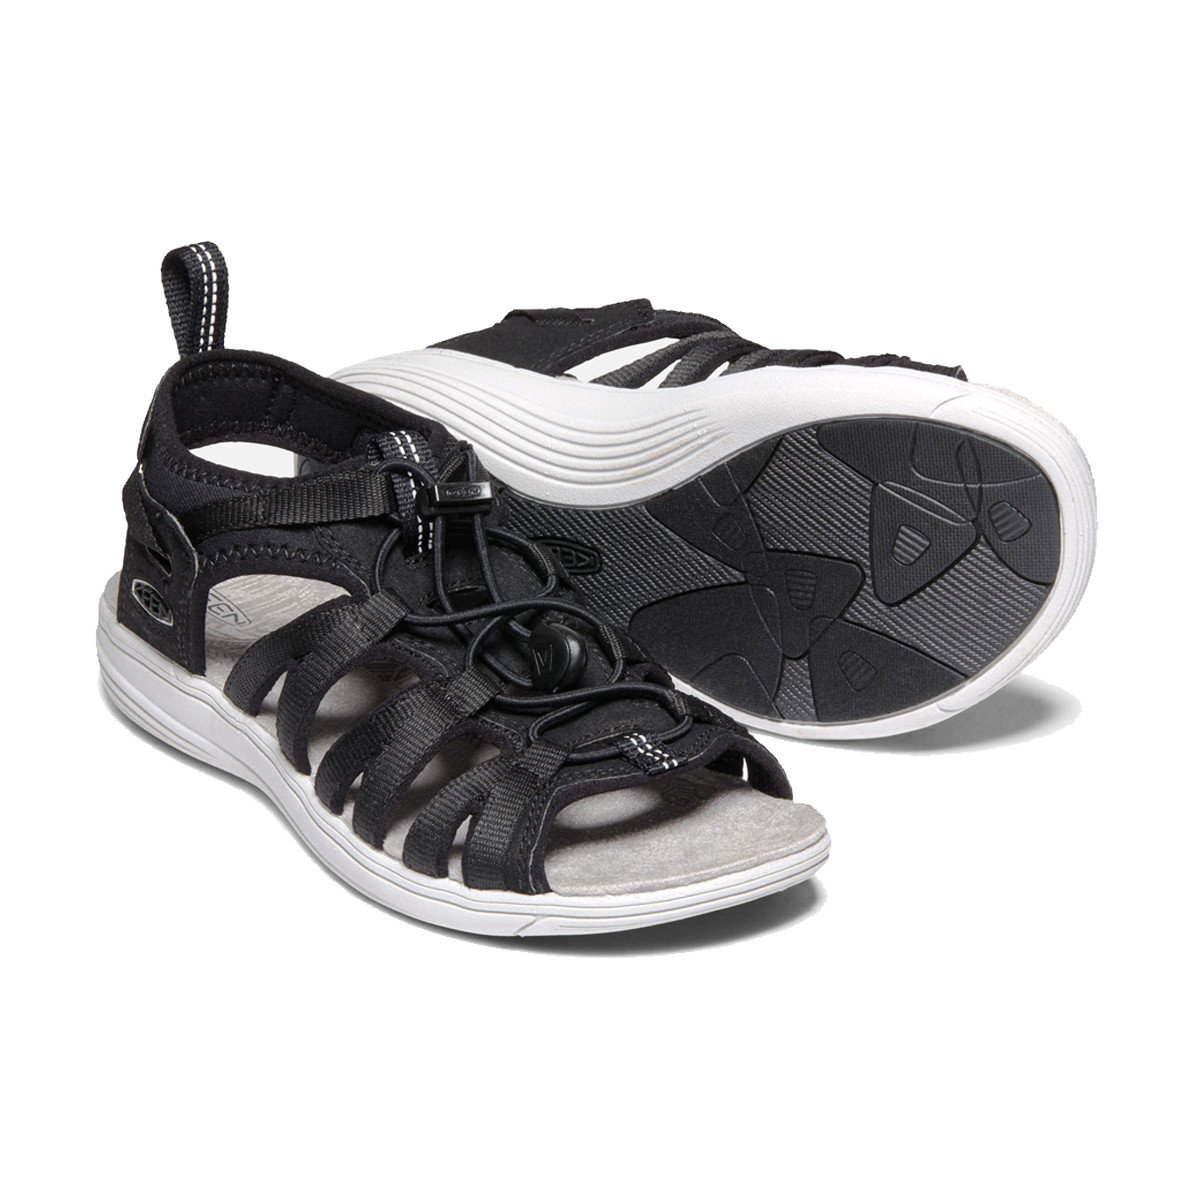 Keen Keen Women's Damaya Lattice Black